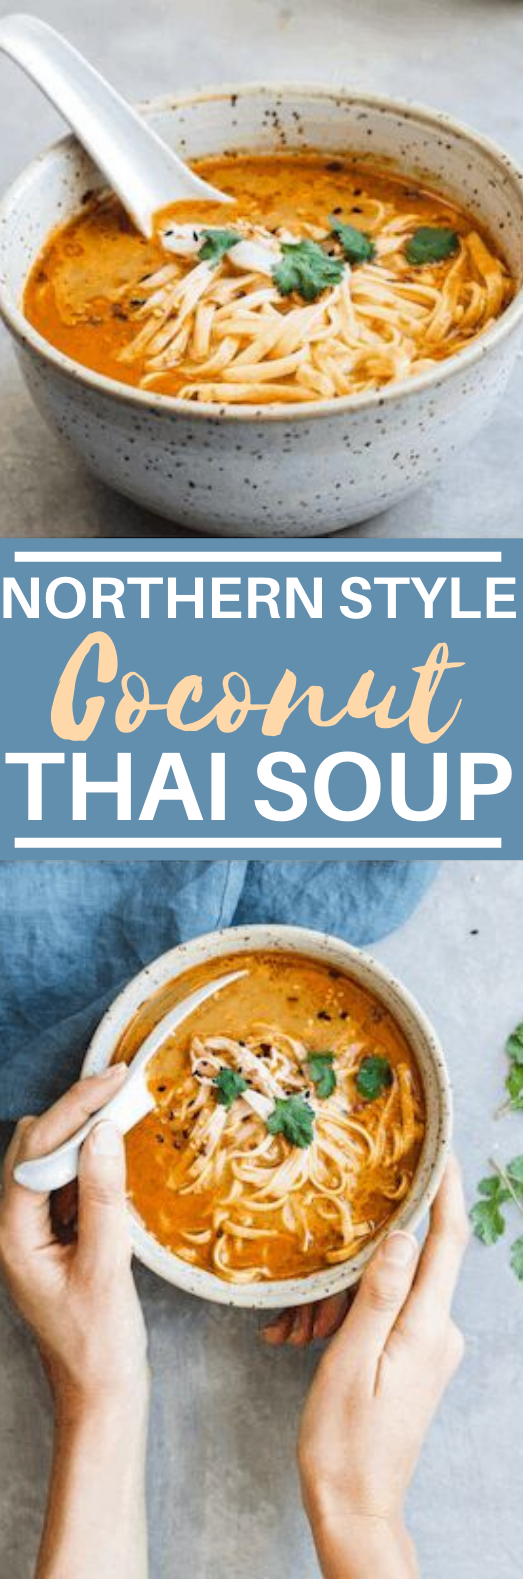 Northern-Style Vegan Thai Coconut Soup #vegan #dinner #soup #comfortfood #meatless